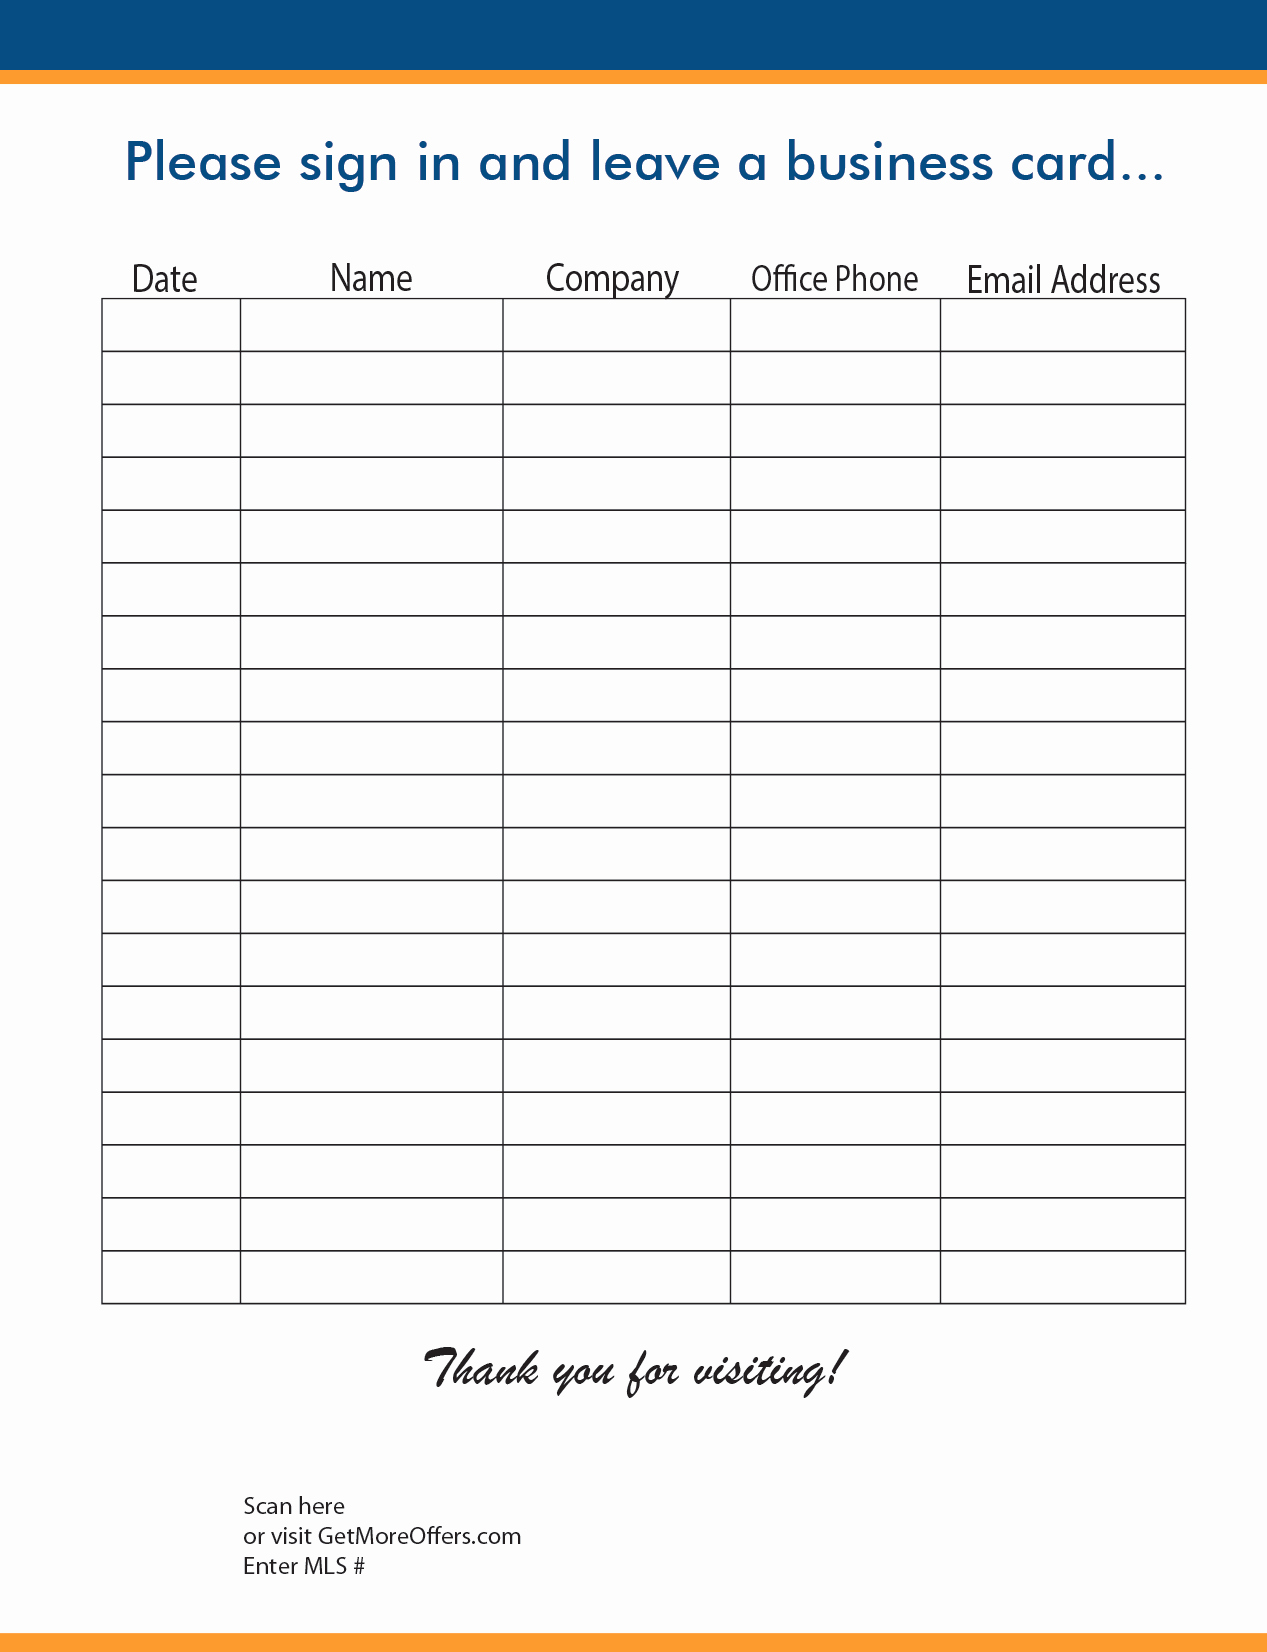 Club Sign In Sheet Template Luxury Club Sign In Sheet Template Portablegasgrillweber